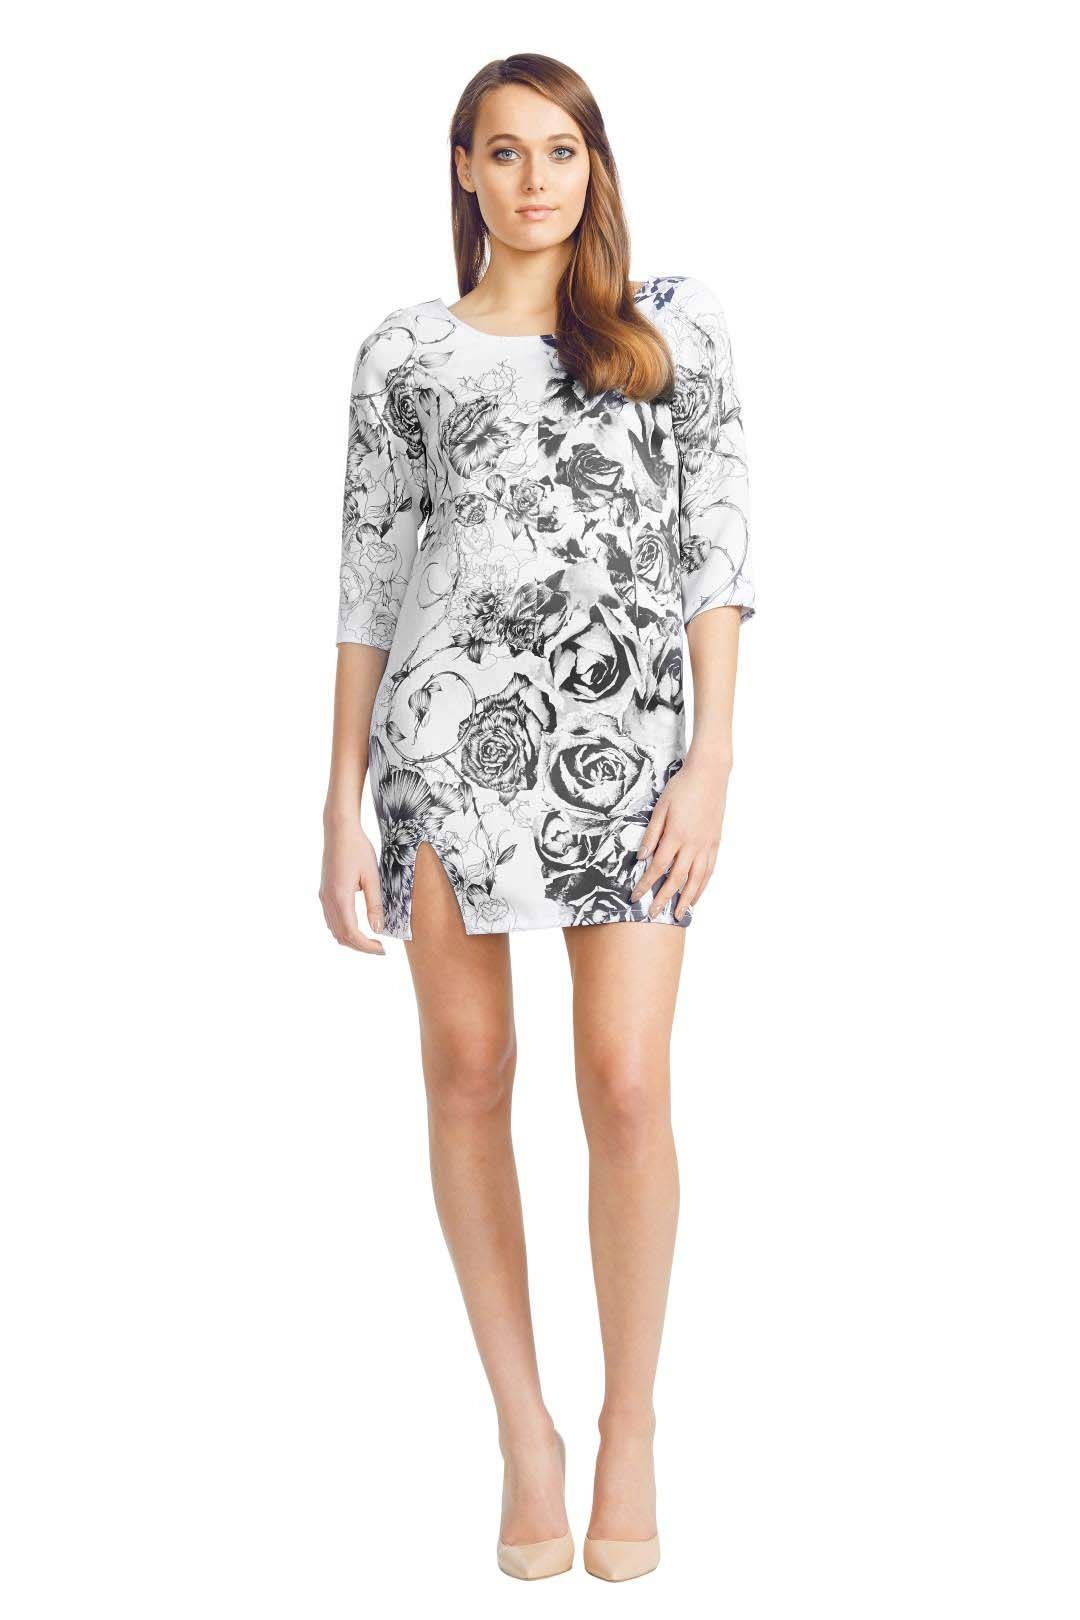 Sara Phillips - Phase Dress - Prints - Front